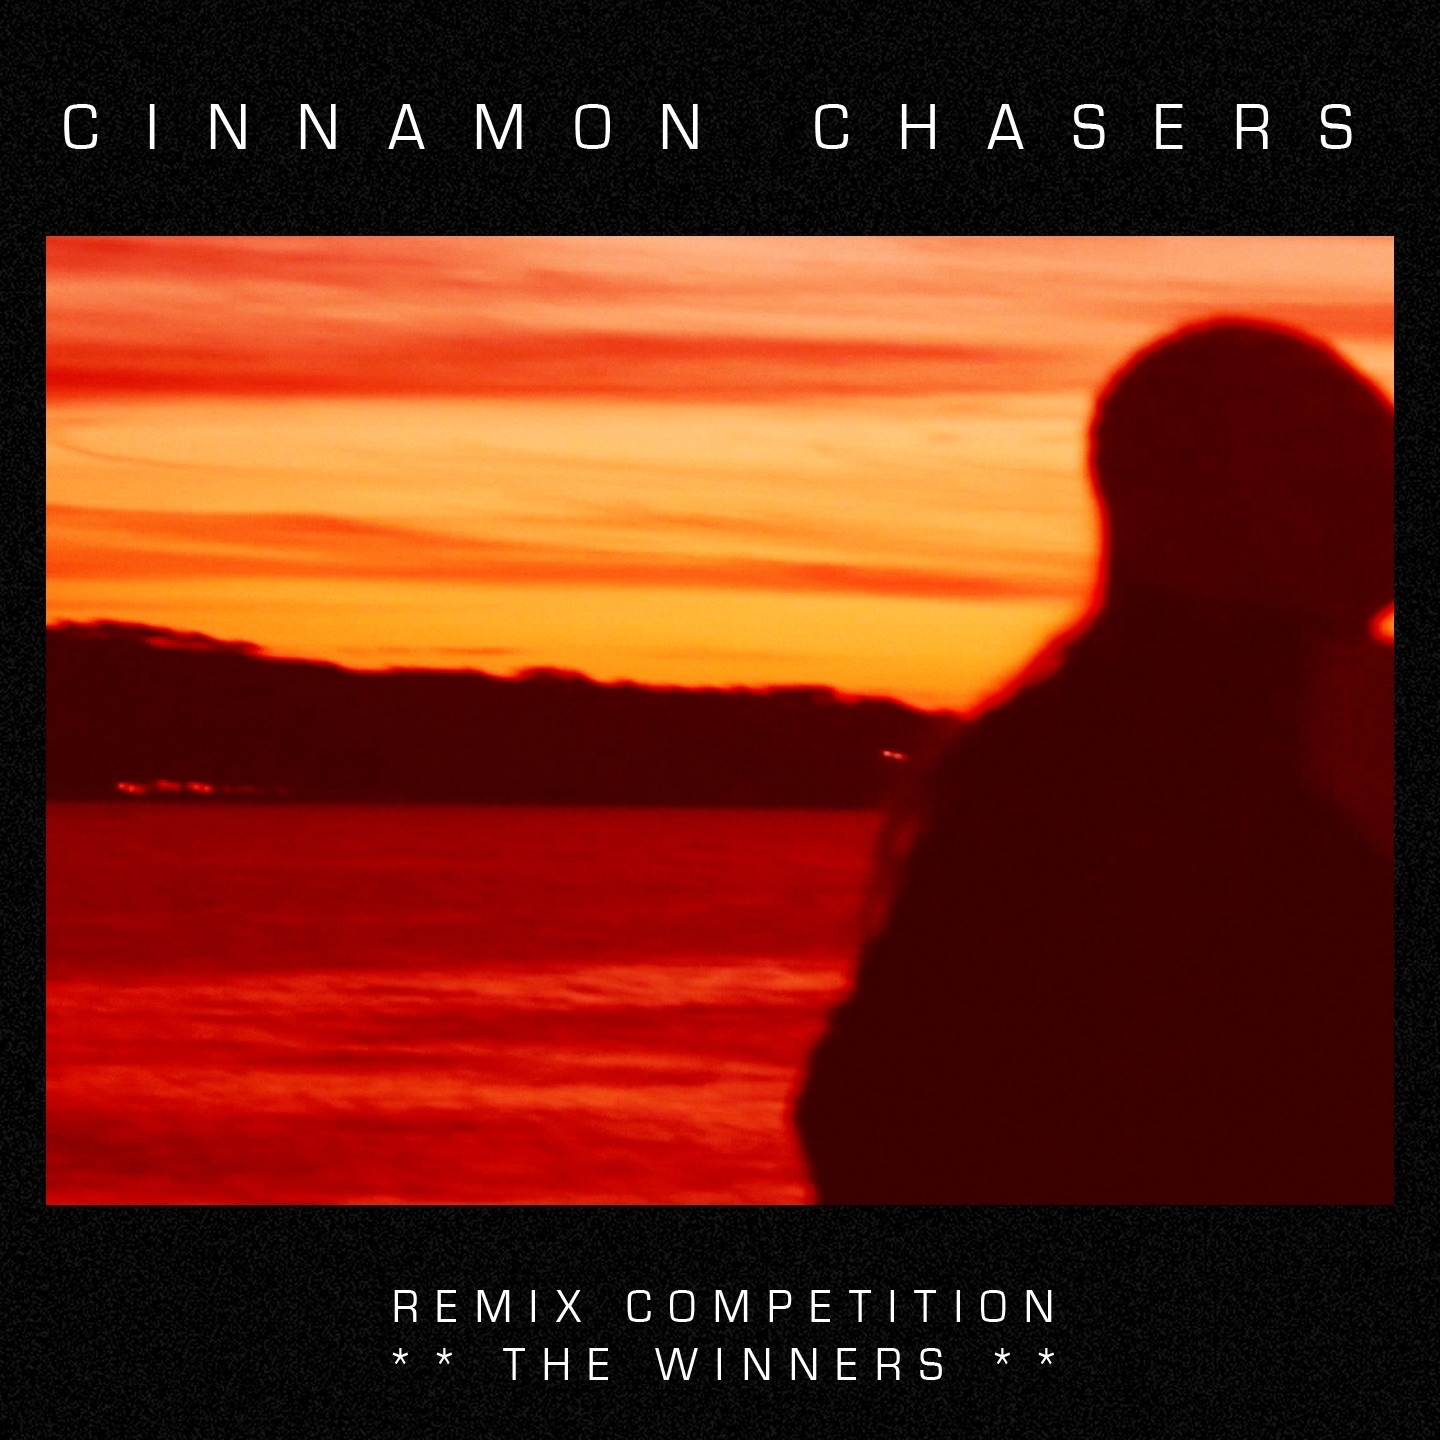 Remix Competition: The Winners